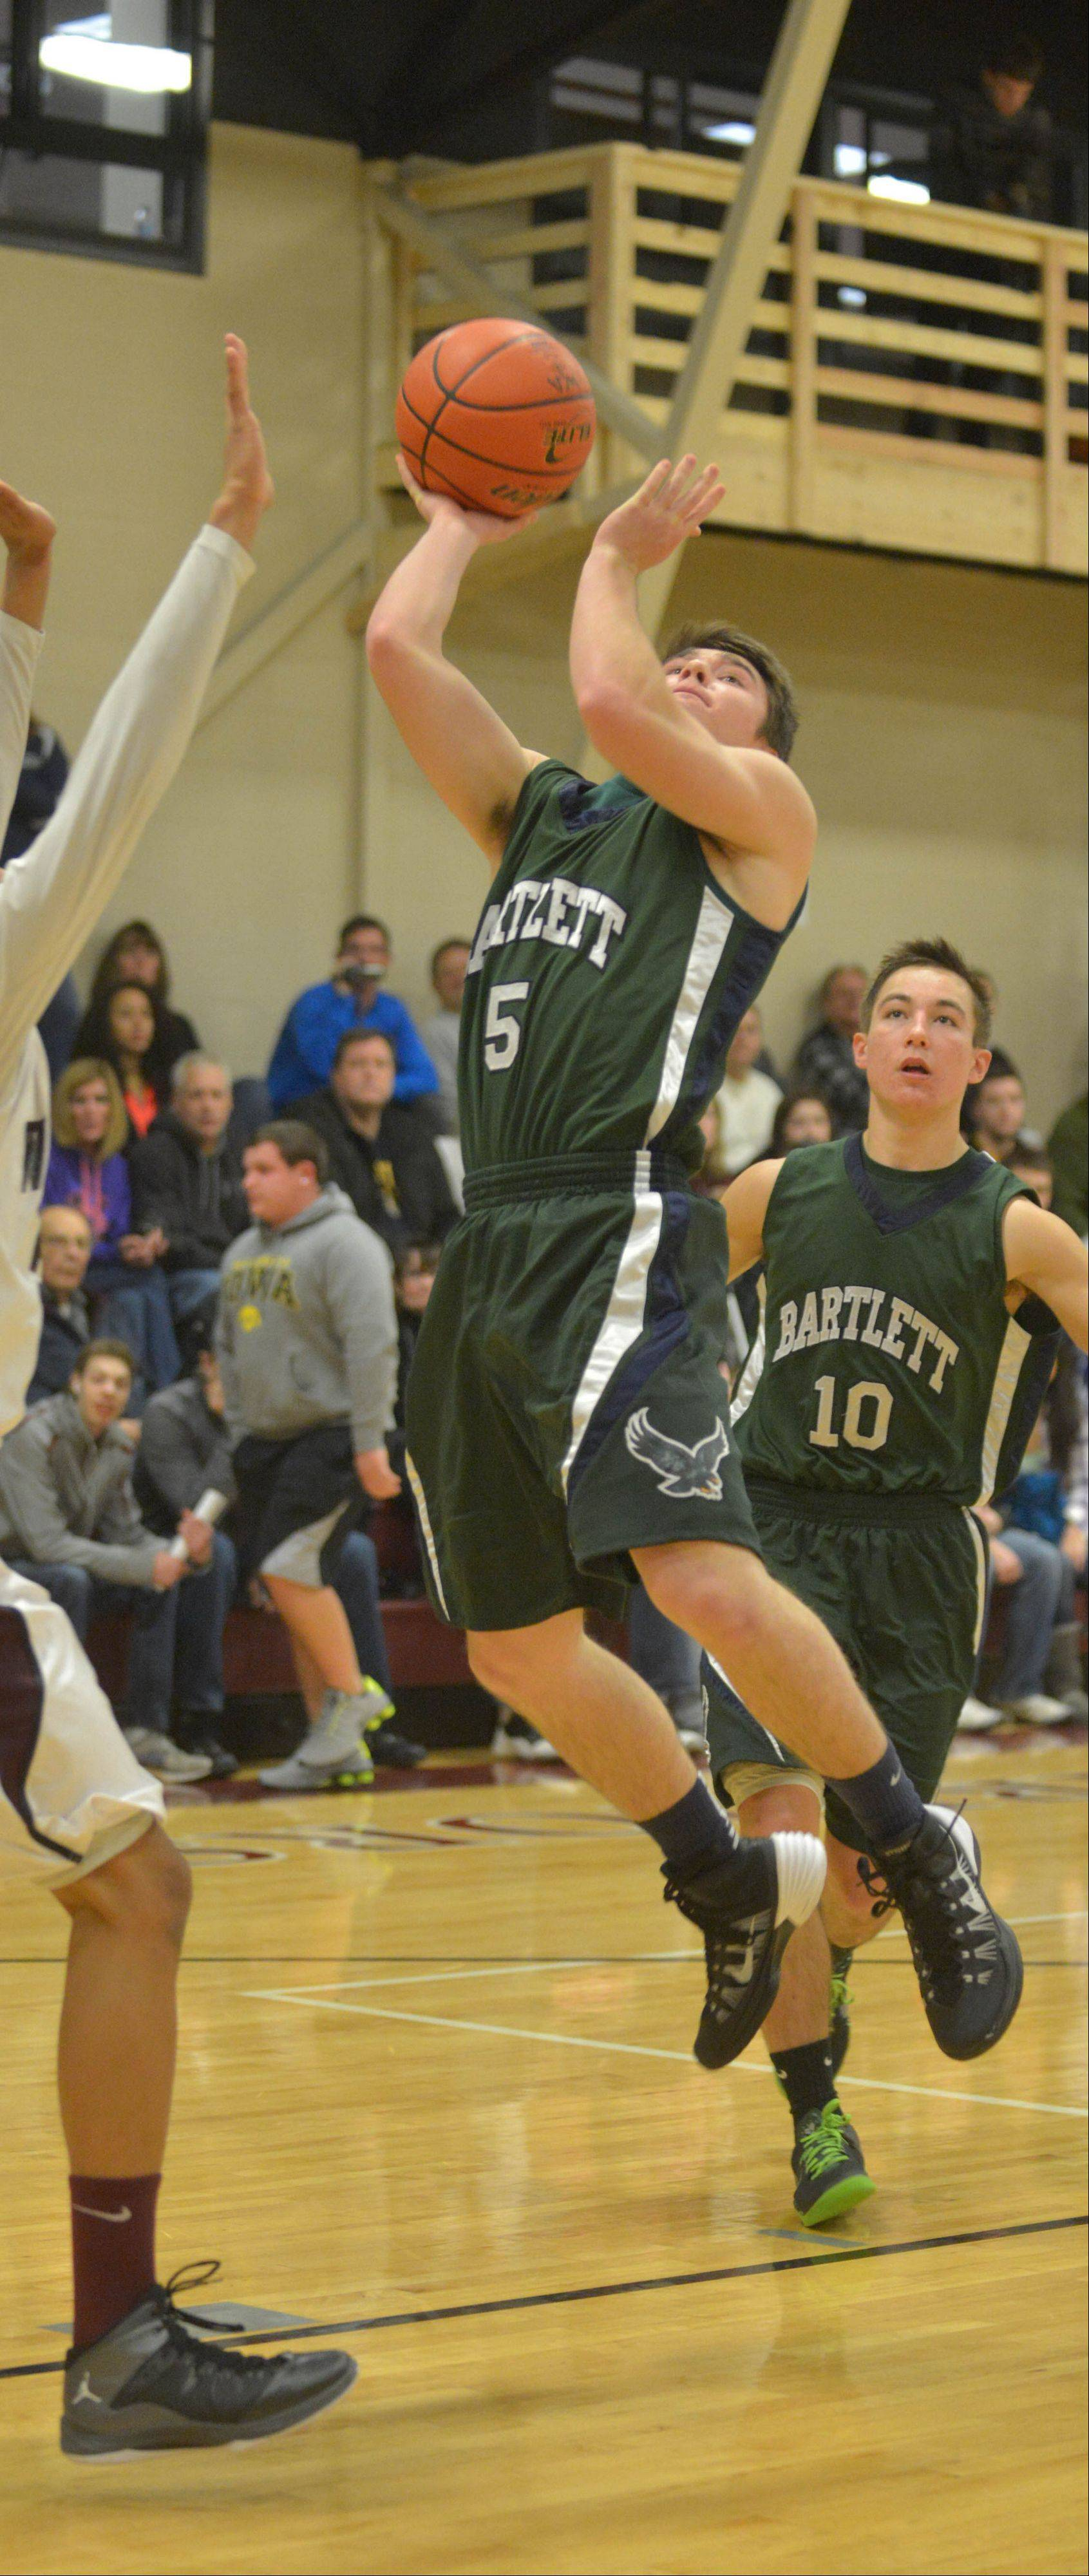 Kevin Wantroba of Bartlett takes a shot at Wheaton Academy Saturday.